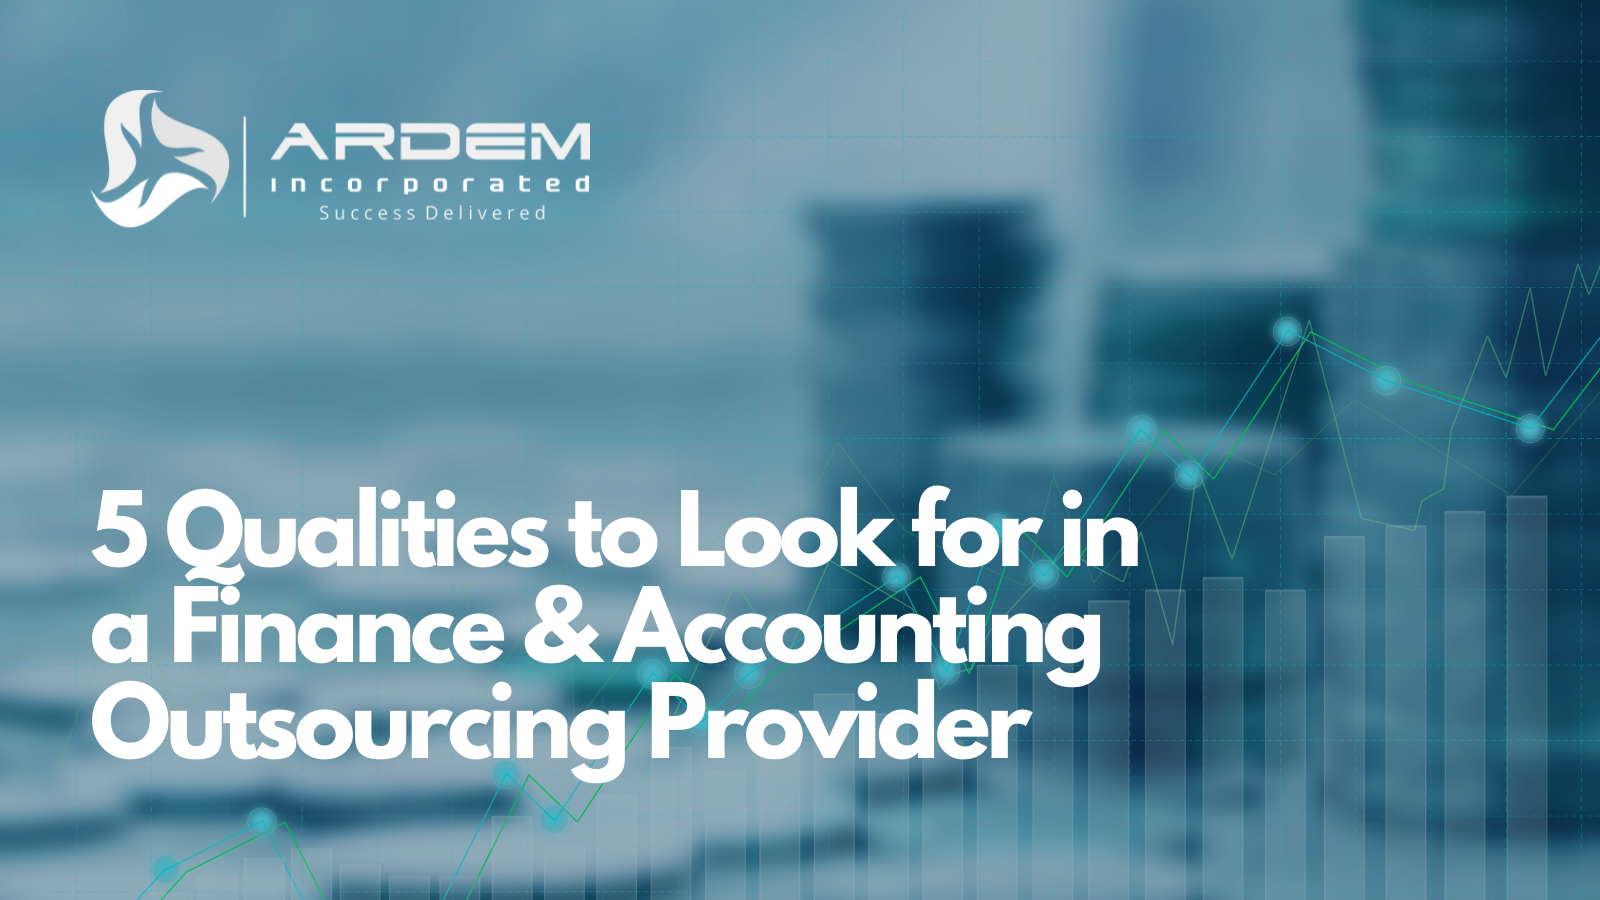 Finance & Accounting Outsourcing Provider